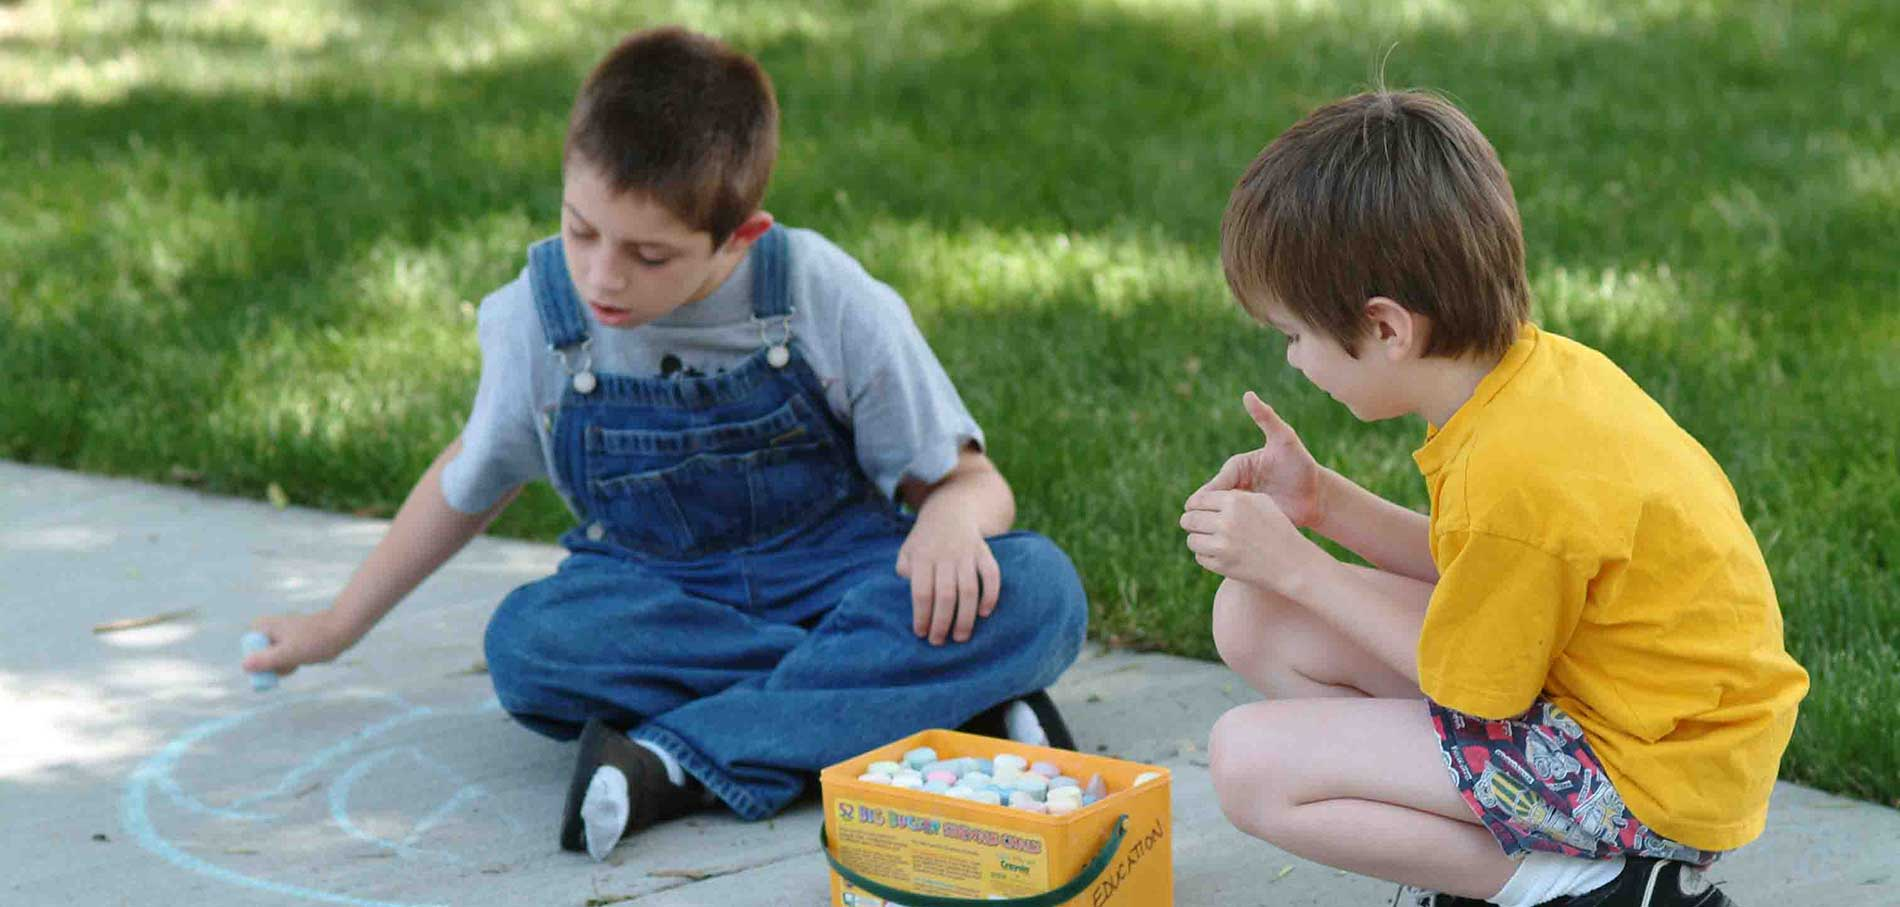 Treatment For Autism In India Stem Cell Therapy For Autism